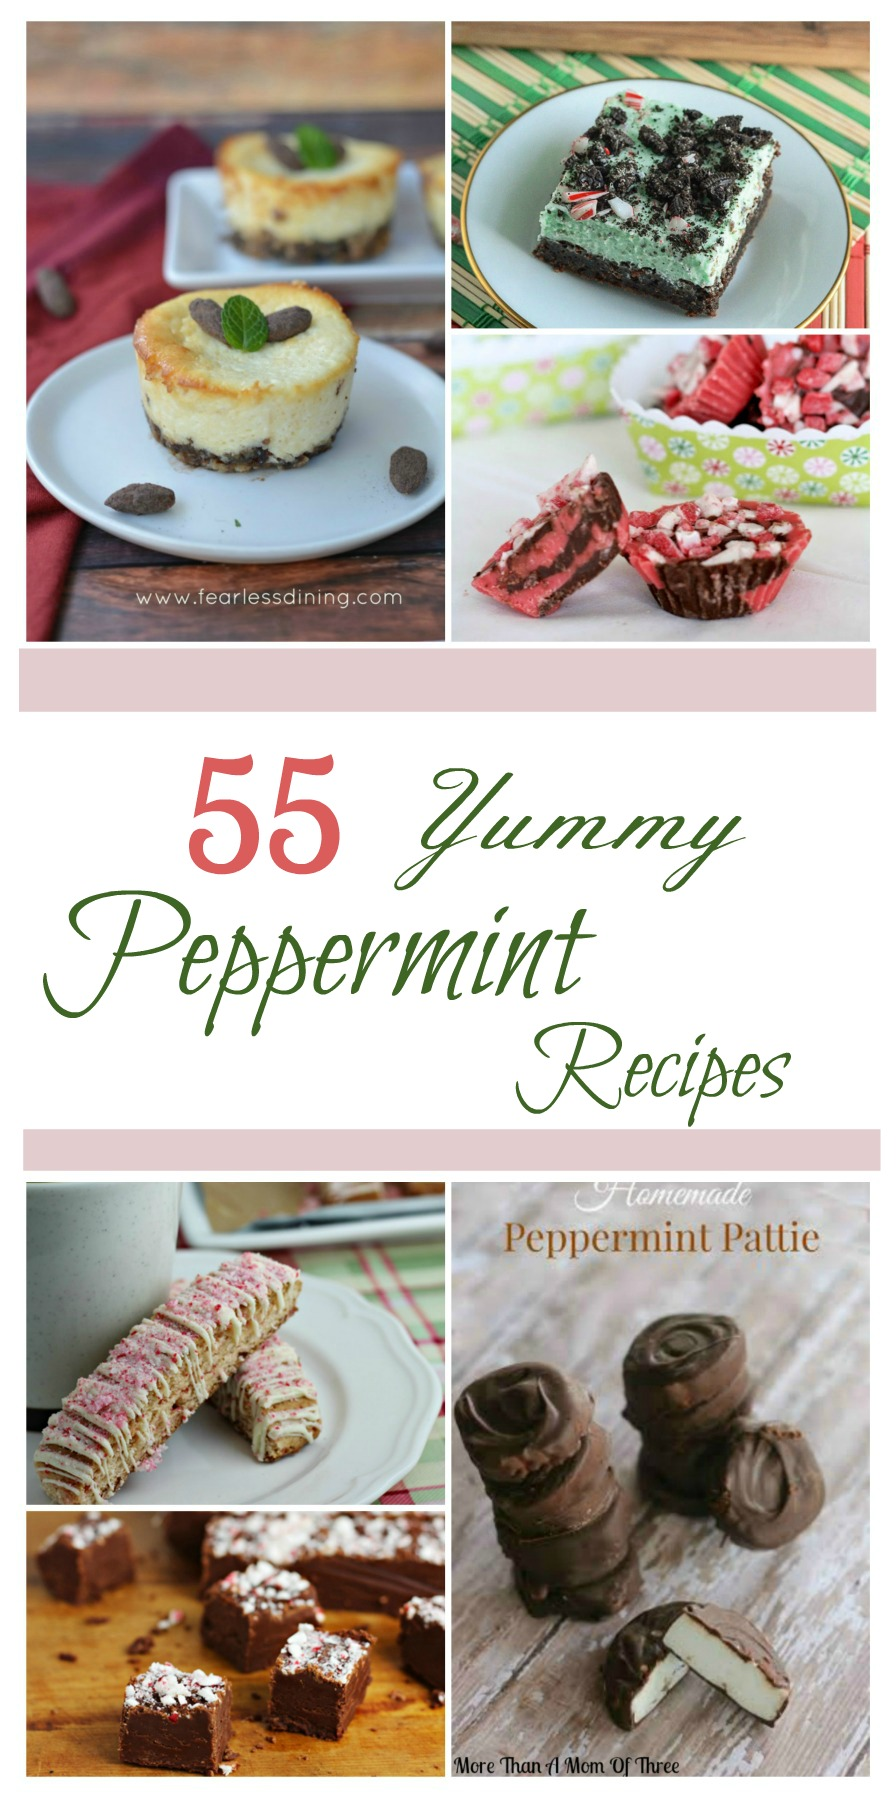 Looking for some delicious recipes? Check out these 55 Yummy Peppermint Recipes here!